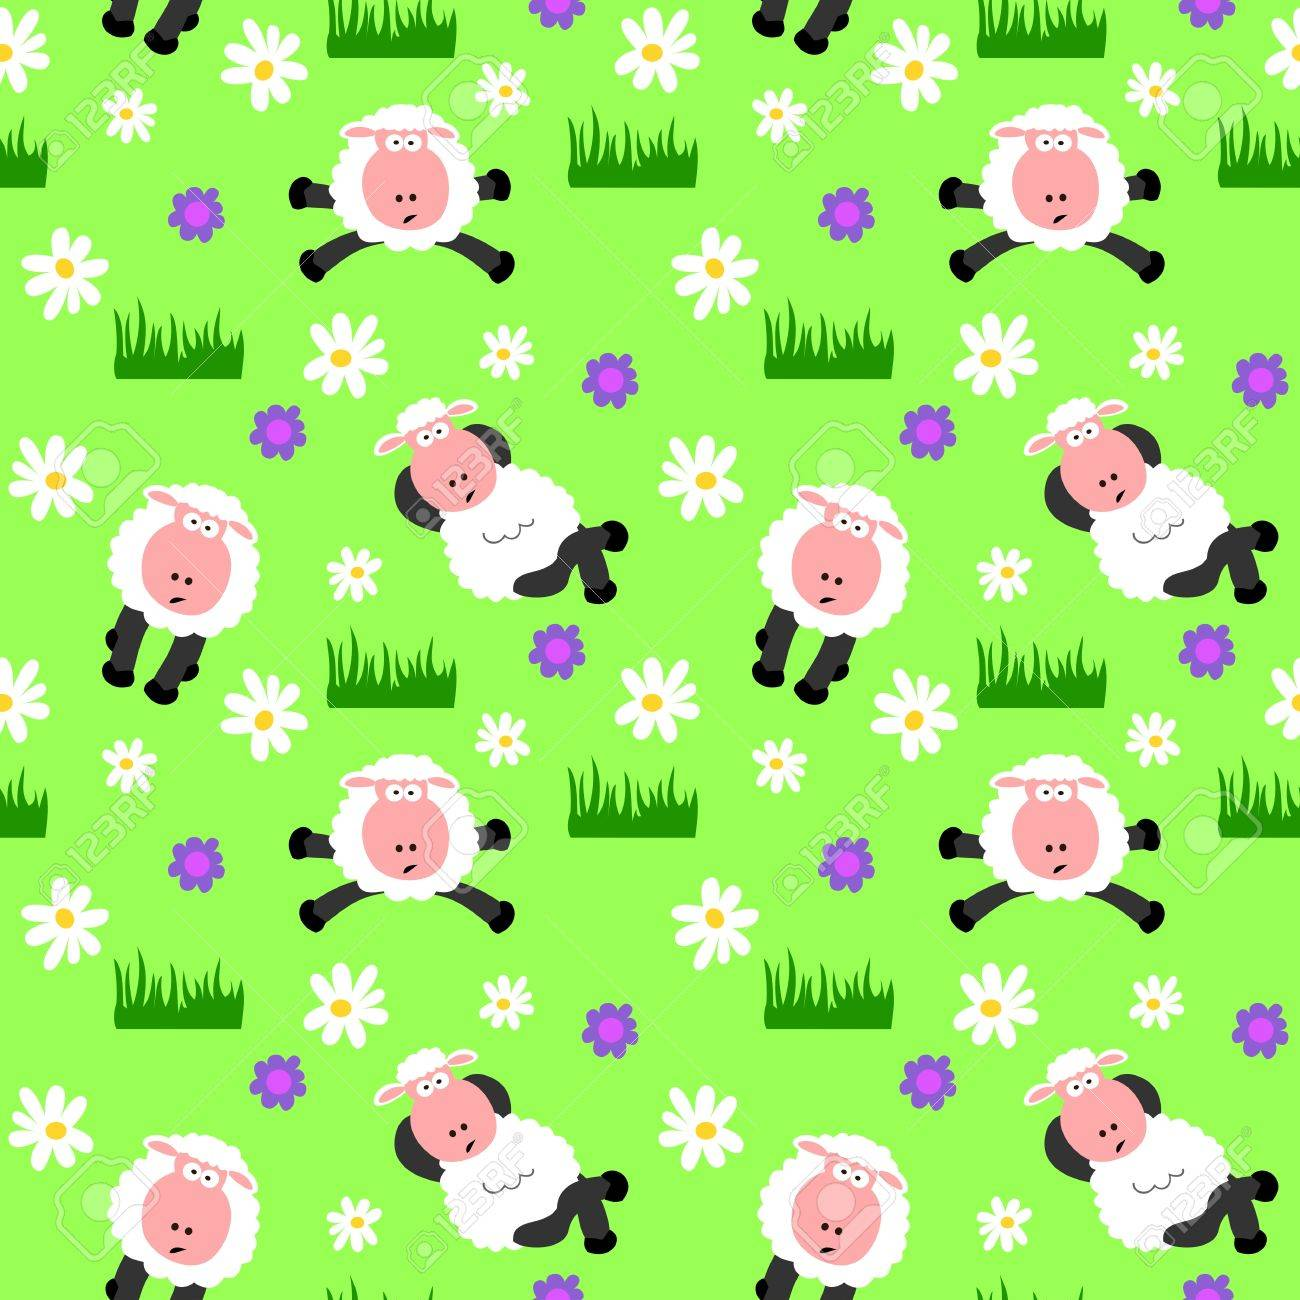 Seamless Sheep Background Stock Vector - 12352230